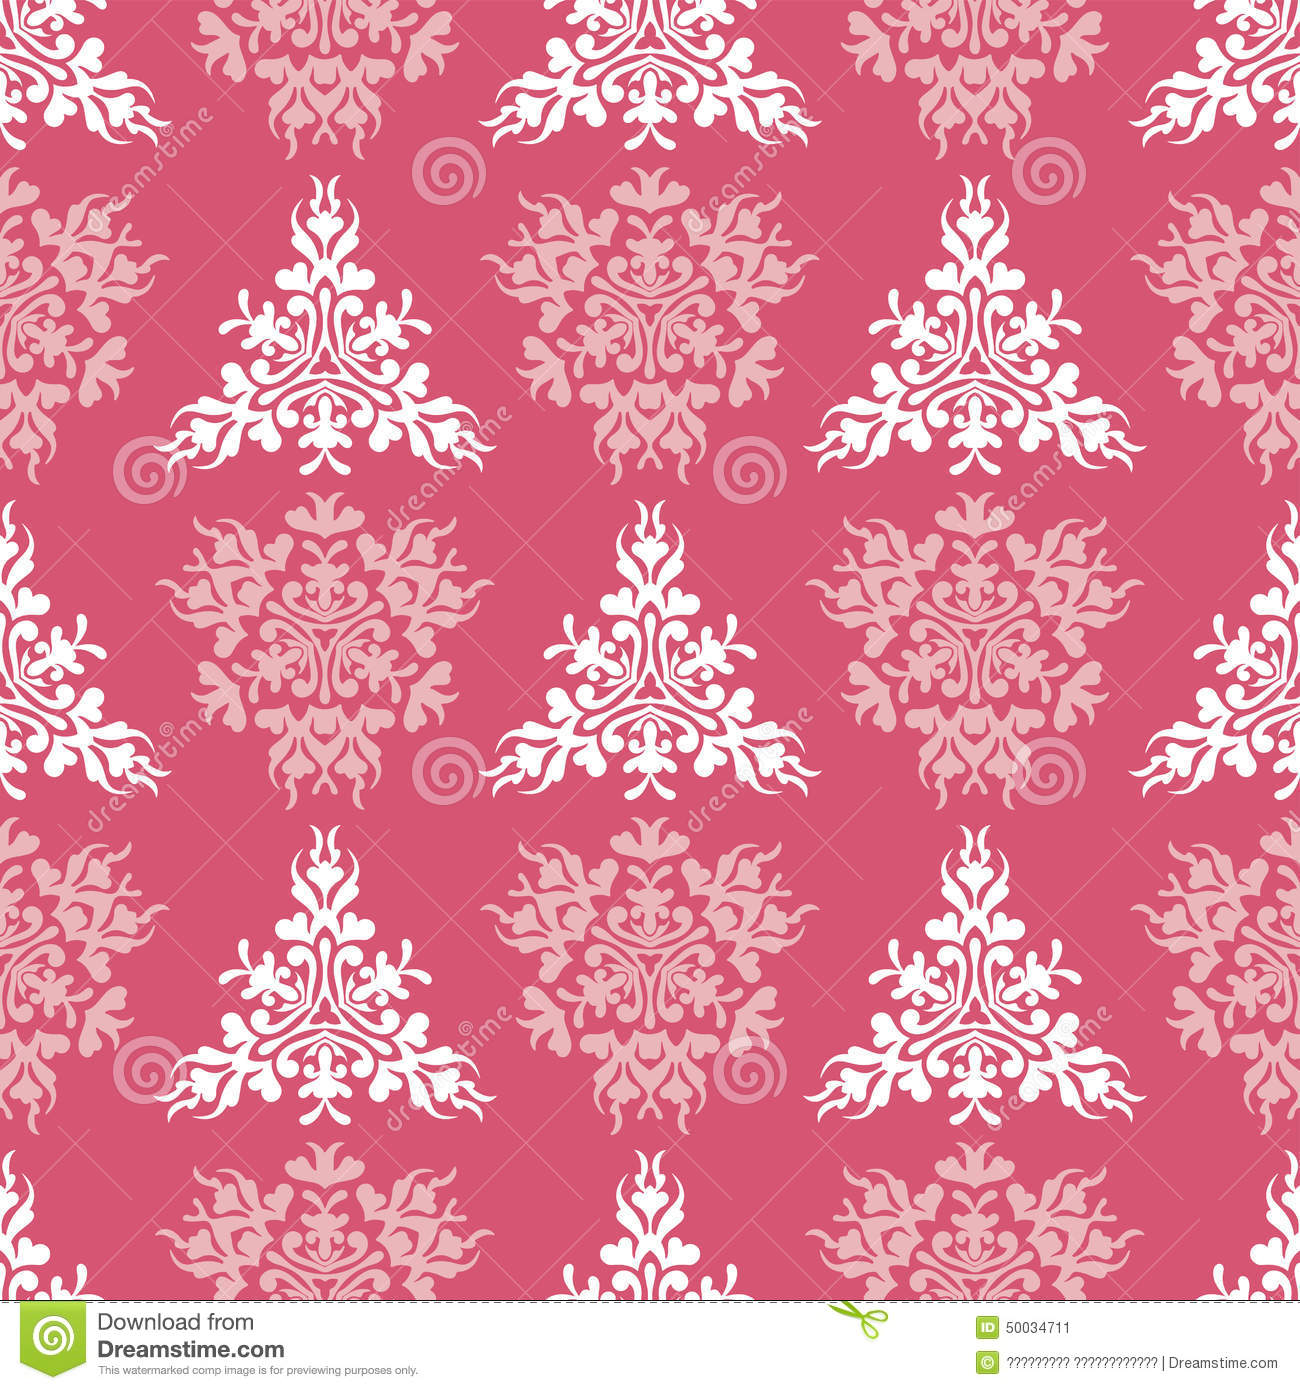 royal pink background - photo #2